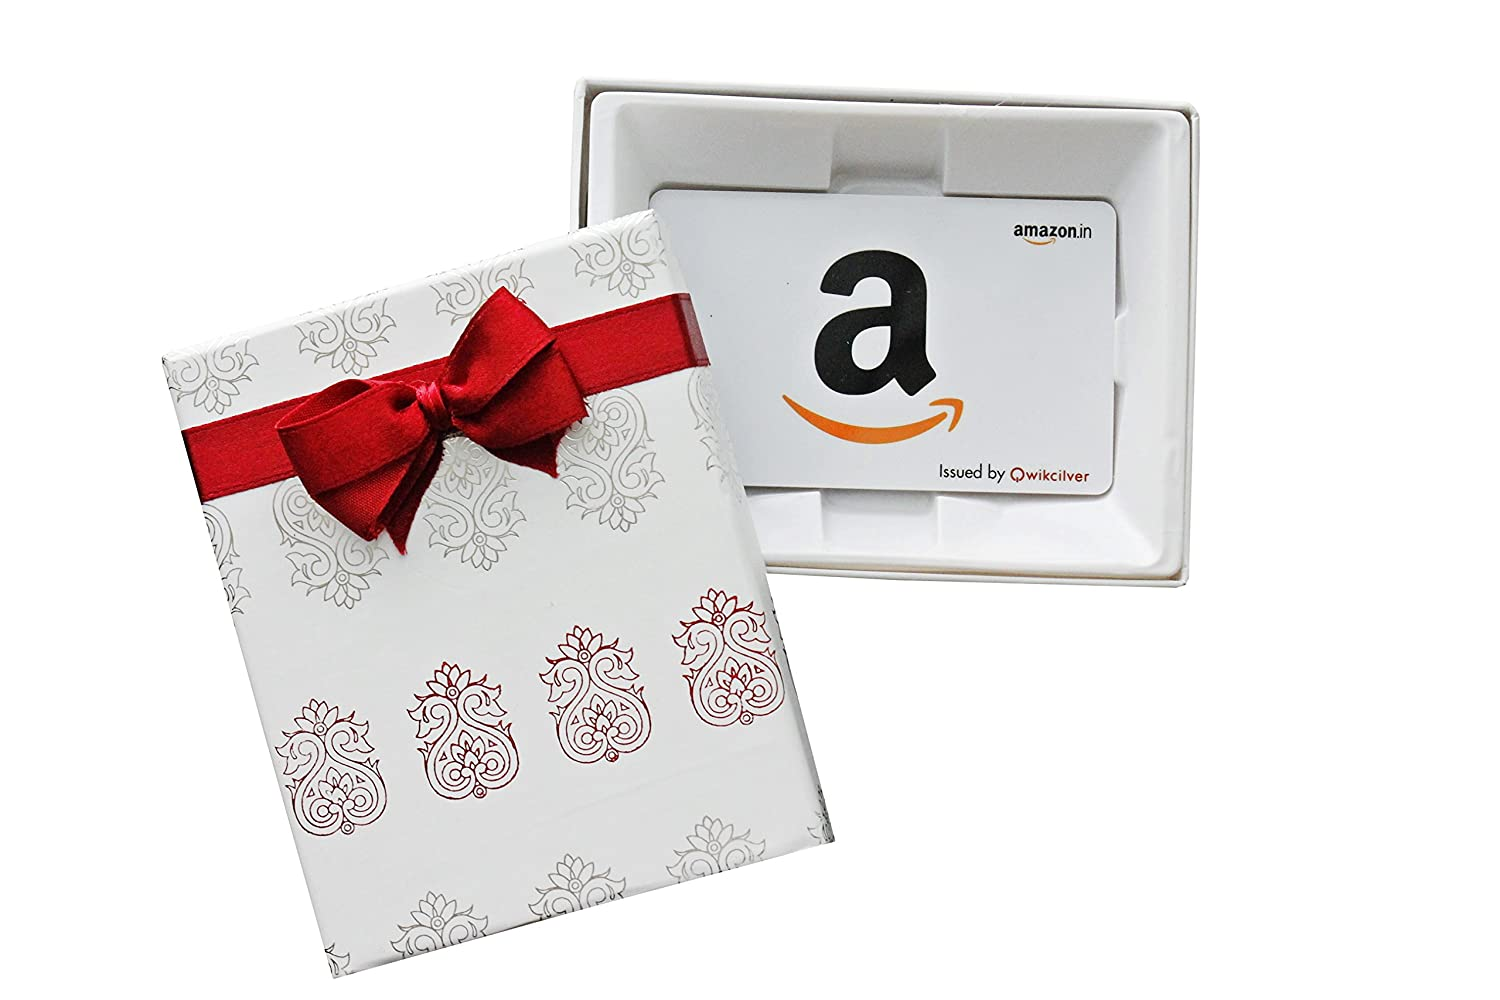 Amazon.in Gift Card in a White Box